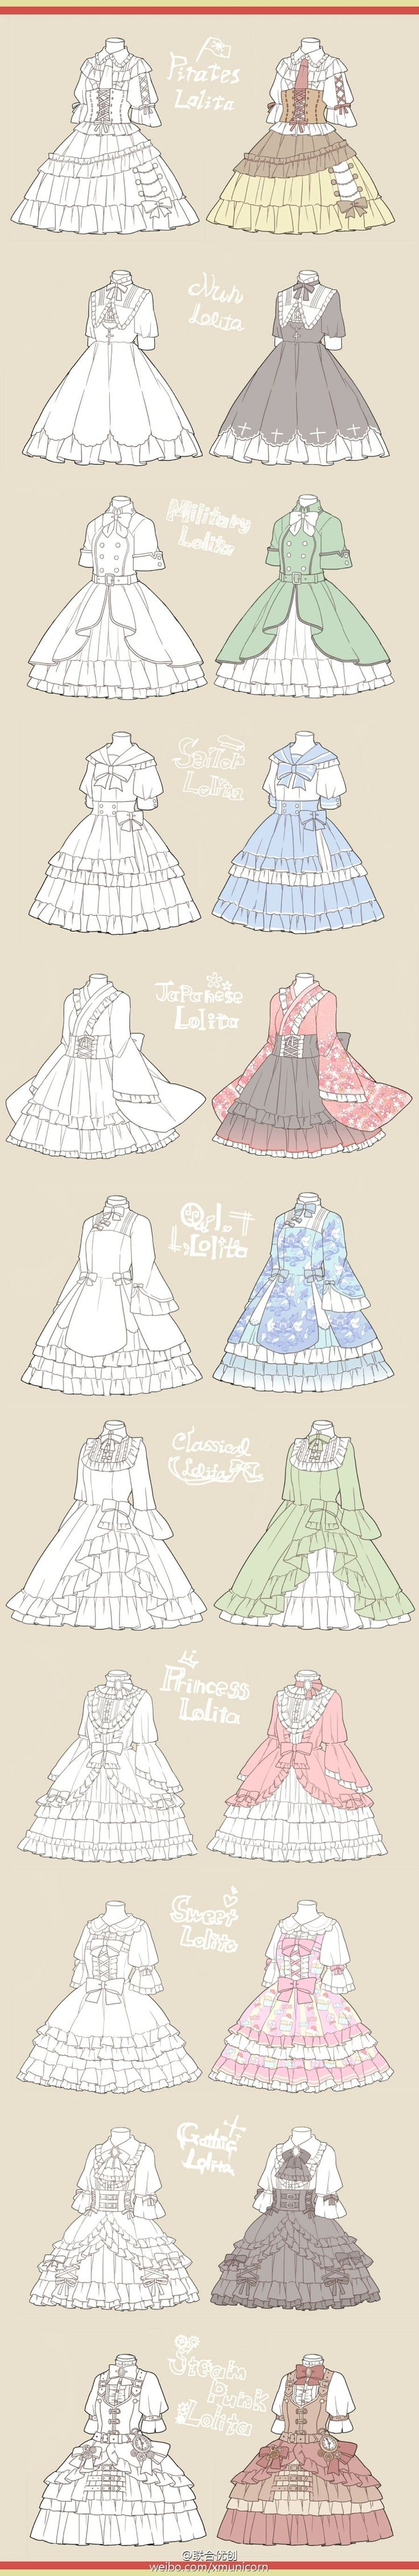 Cloth reference